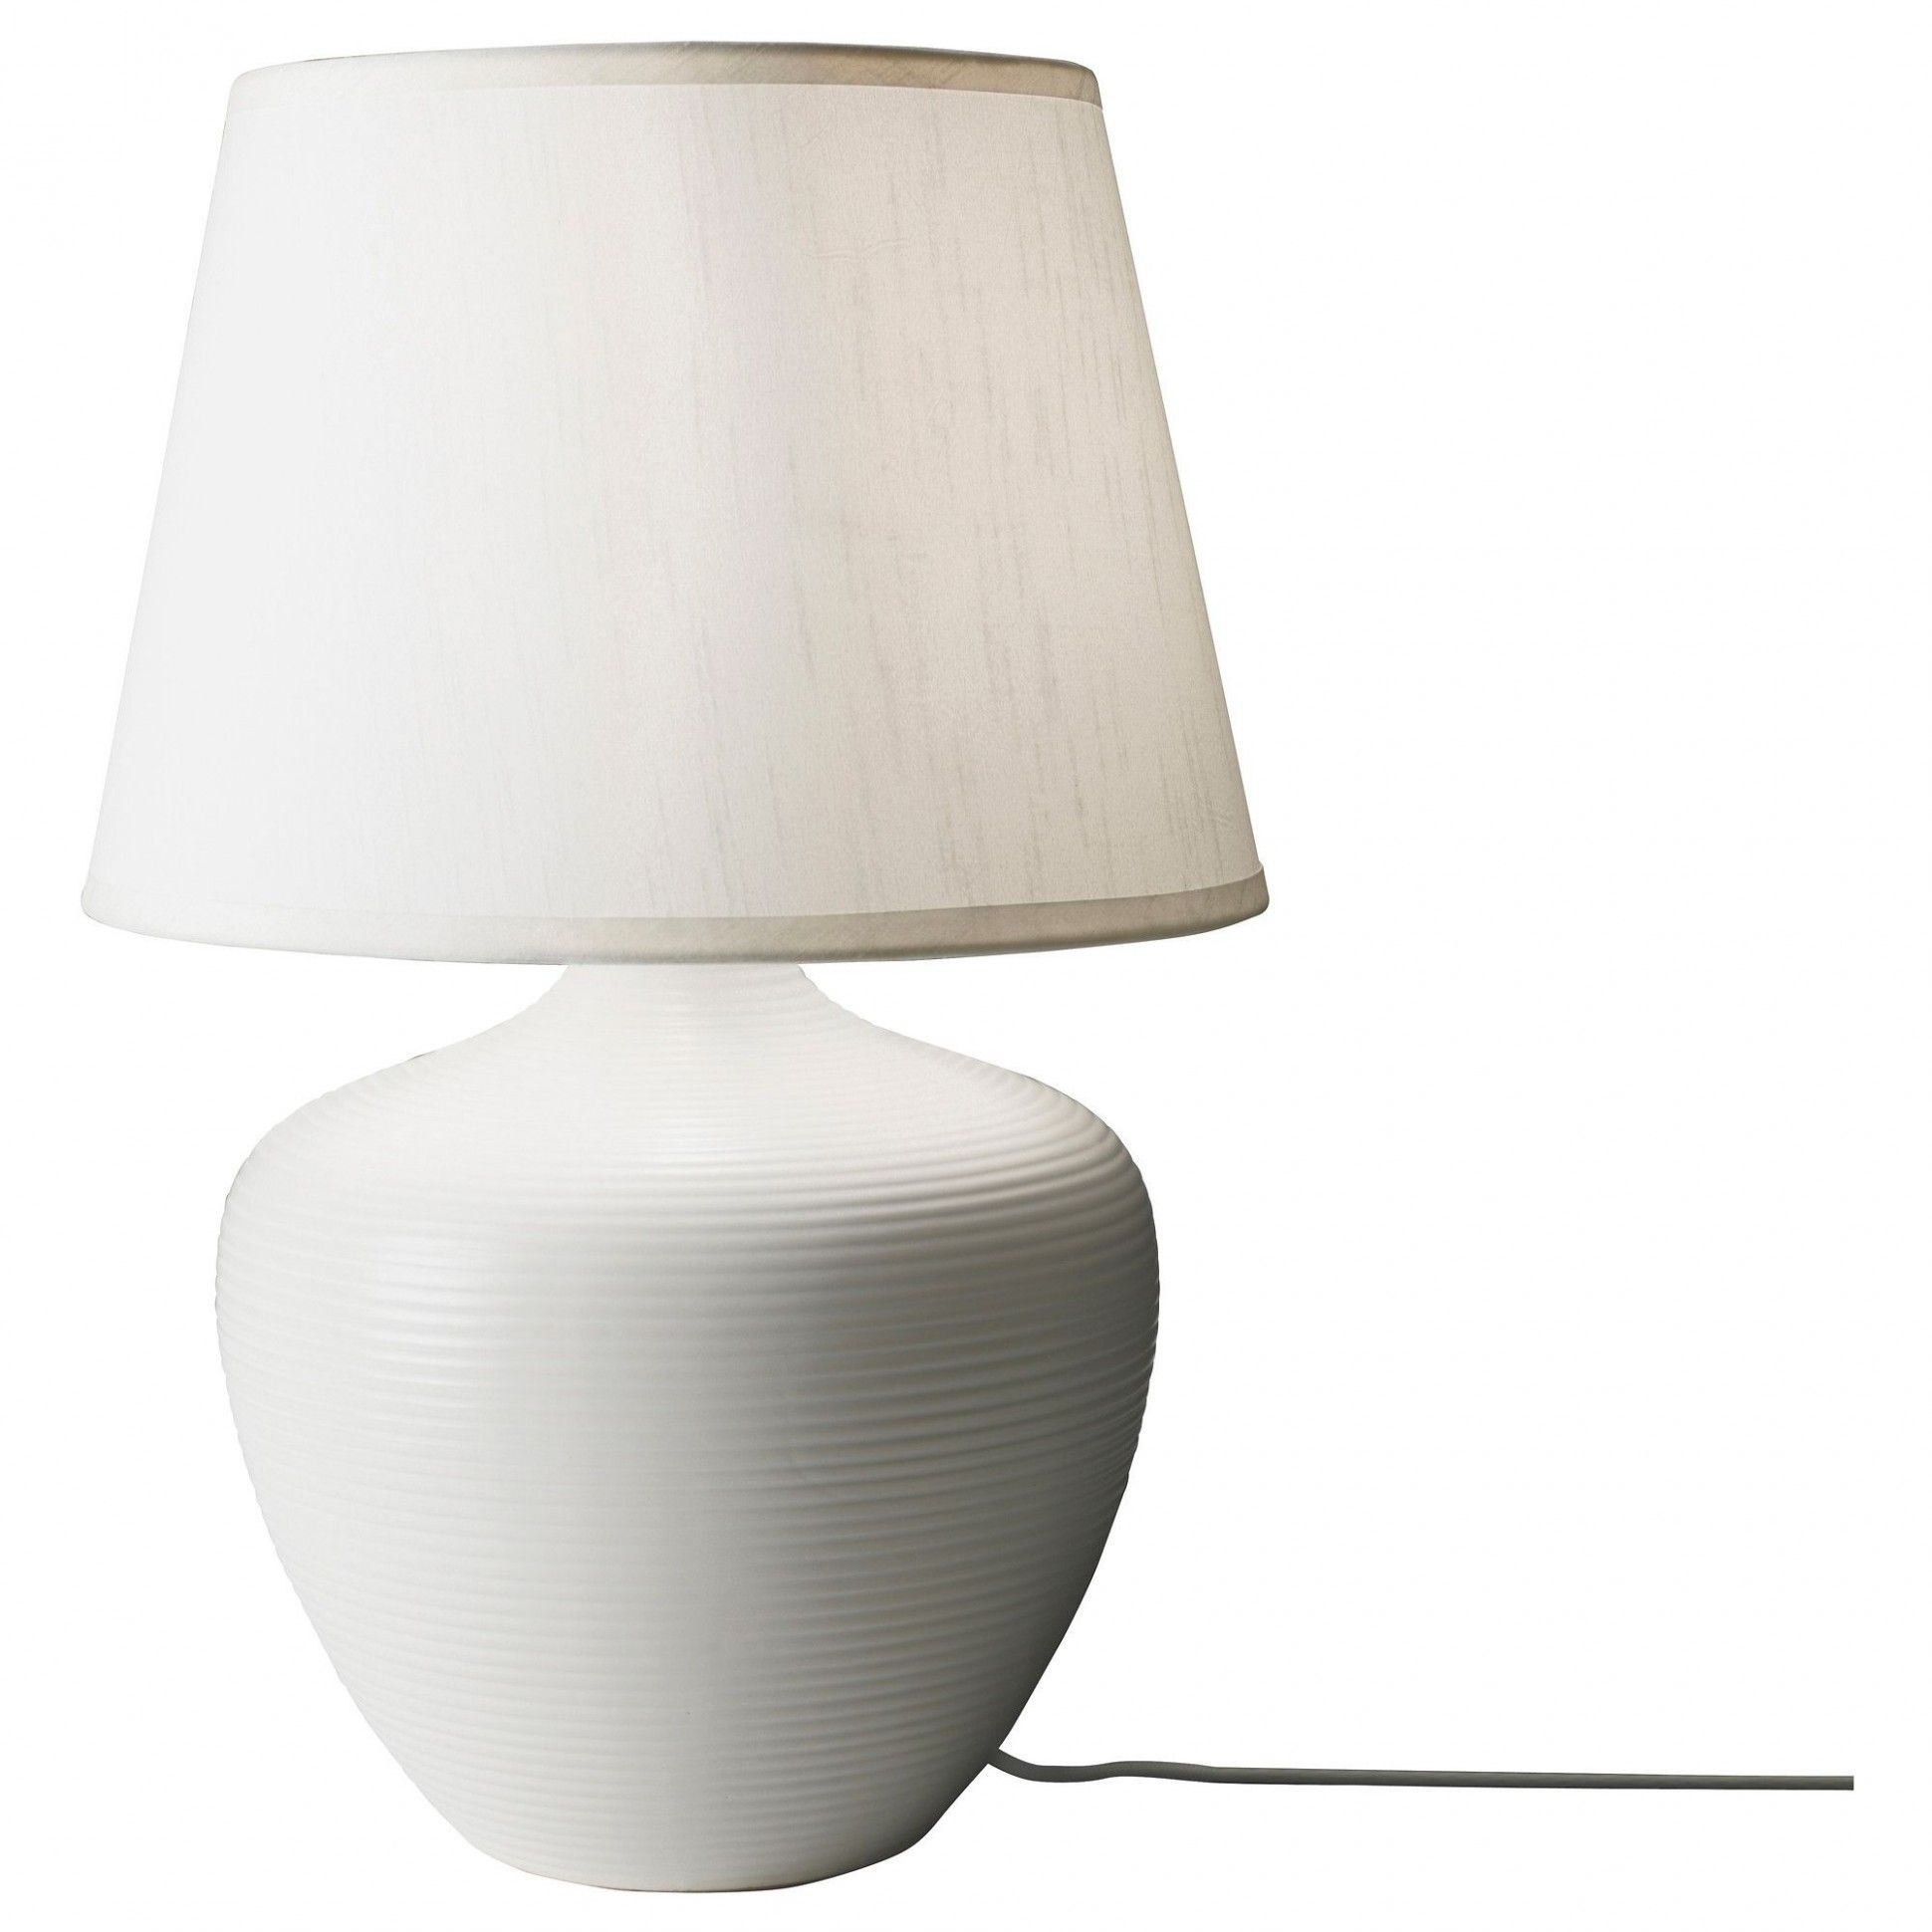 14 Lovely Table Lamps For Living Room Ikea In 2021 Ikea Living Room Tables Table Lamps Living Room Lamps Living Room Living room table lamp